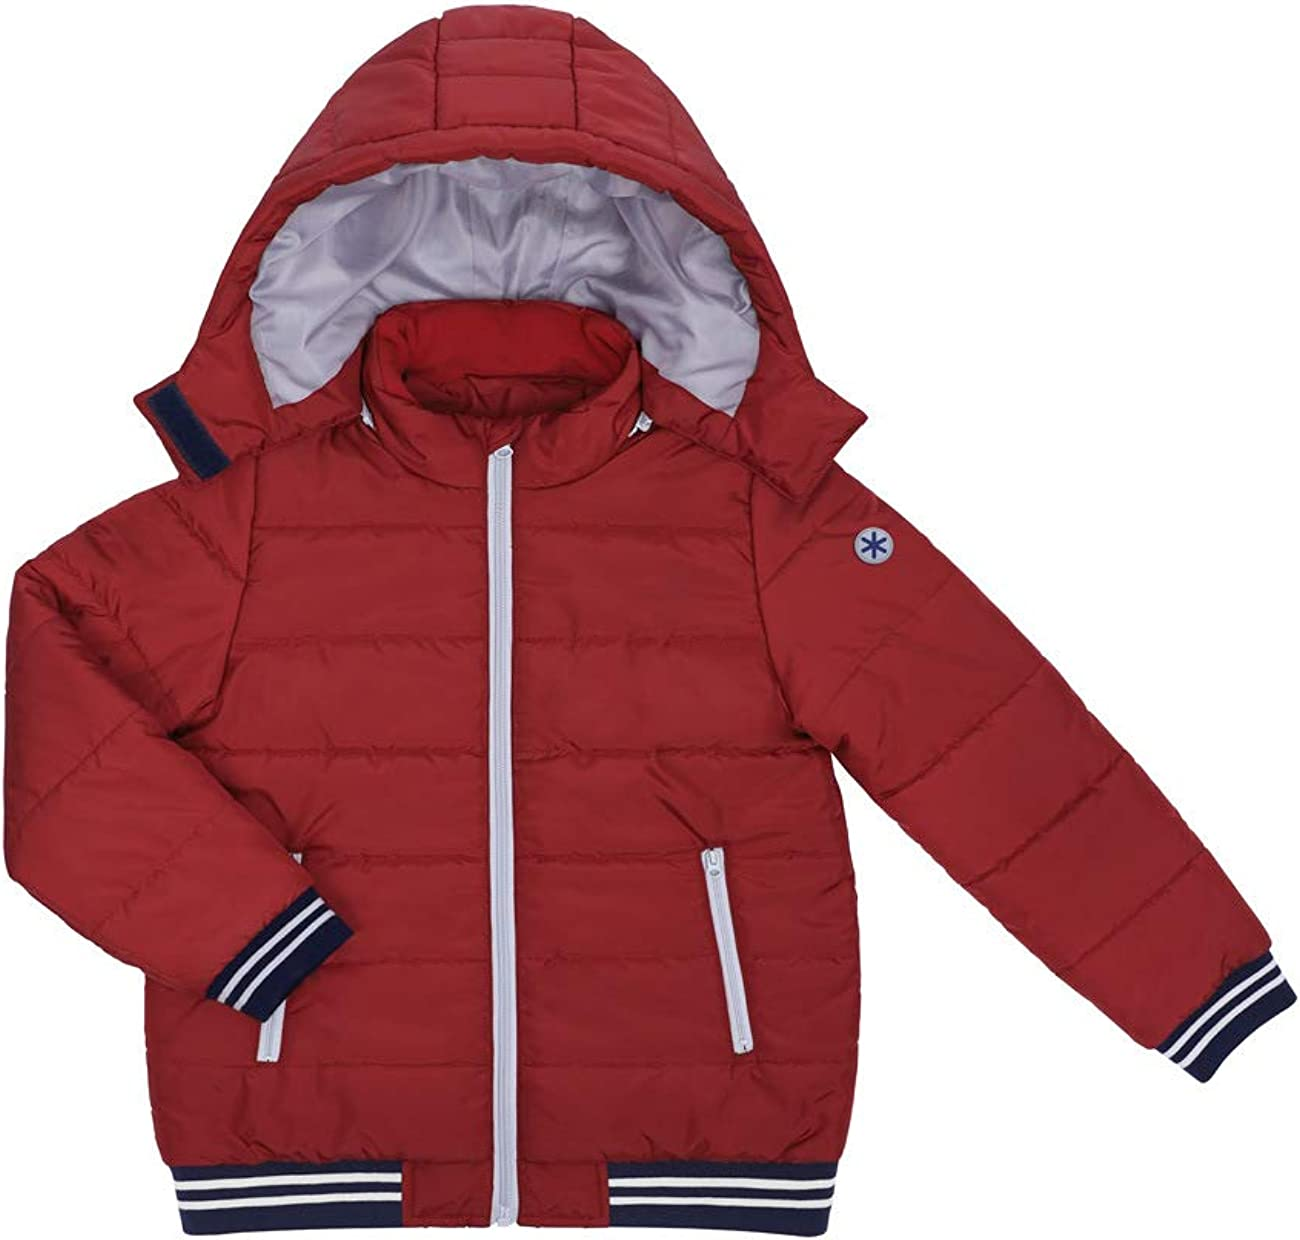 DISHANG Kid's Removable Hooded Jacket Warm Quilted Coat Casual Outdoor Cool Cute for Boys Girls Ski Snowboard Jacket